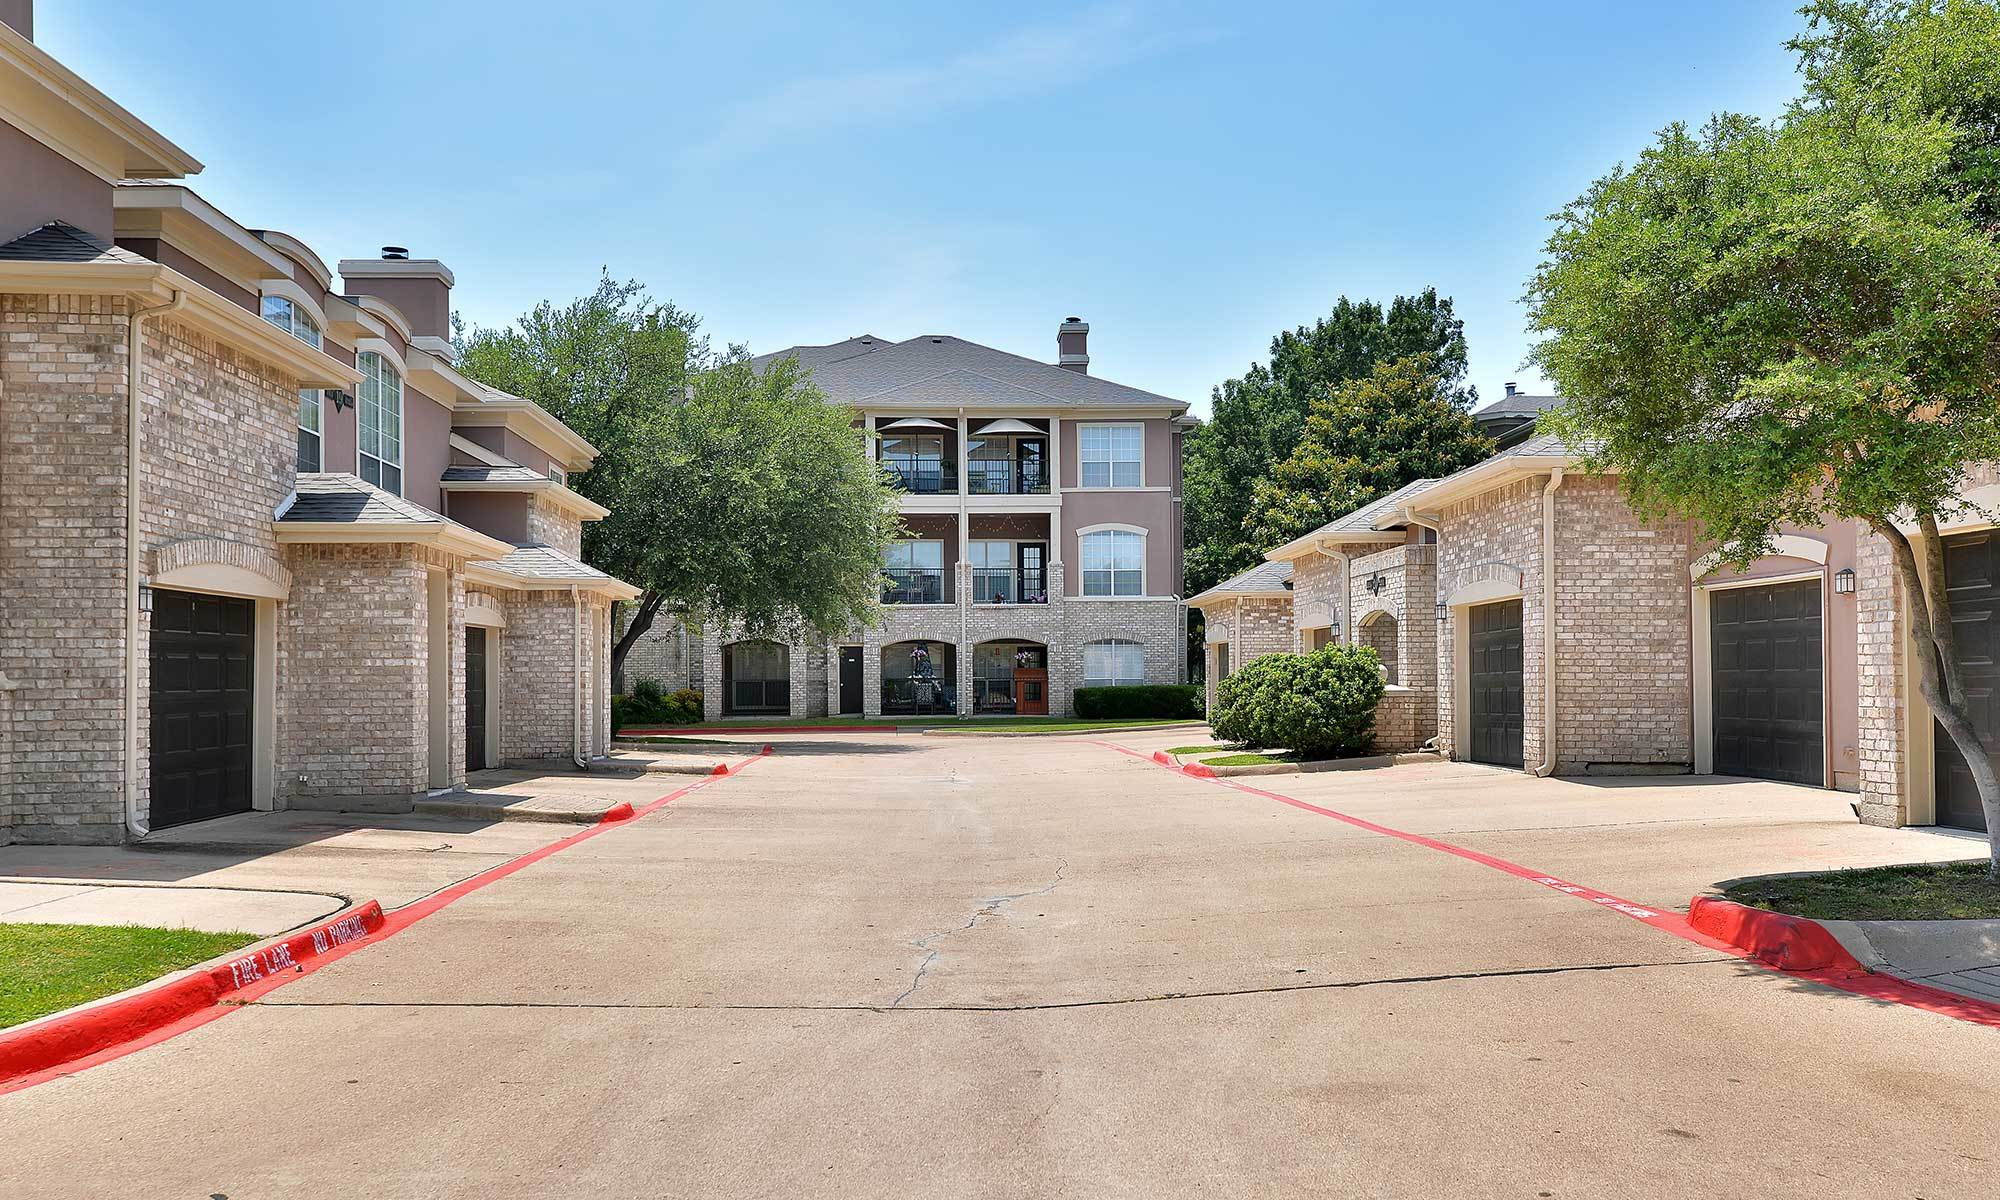 Apartments in Plano  TXWillow Bend Plano  TX Apartments for Rent   Bentley Place at  . 1 Bedroom Apartments Plano Tx. Home Design Ideas